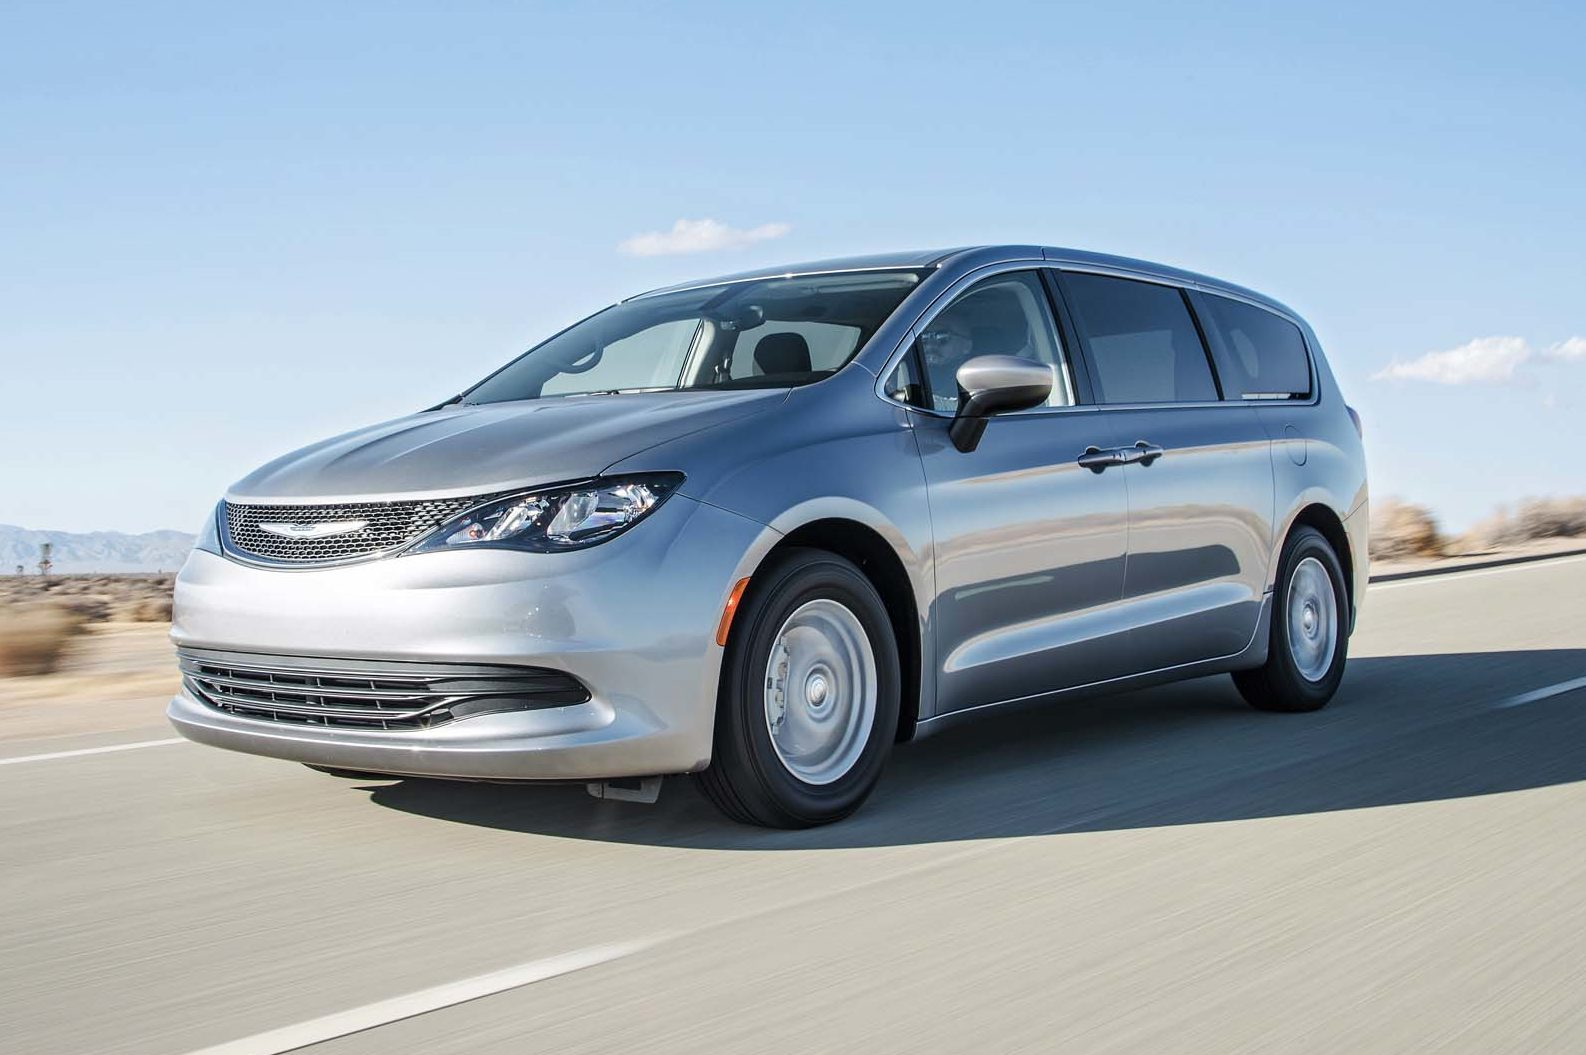 2017 Chrysler Pacifica Limited Front Three Quarter In Motion 04 E1481227064169 2